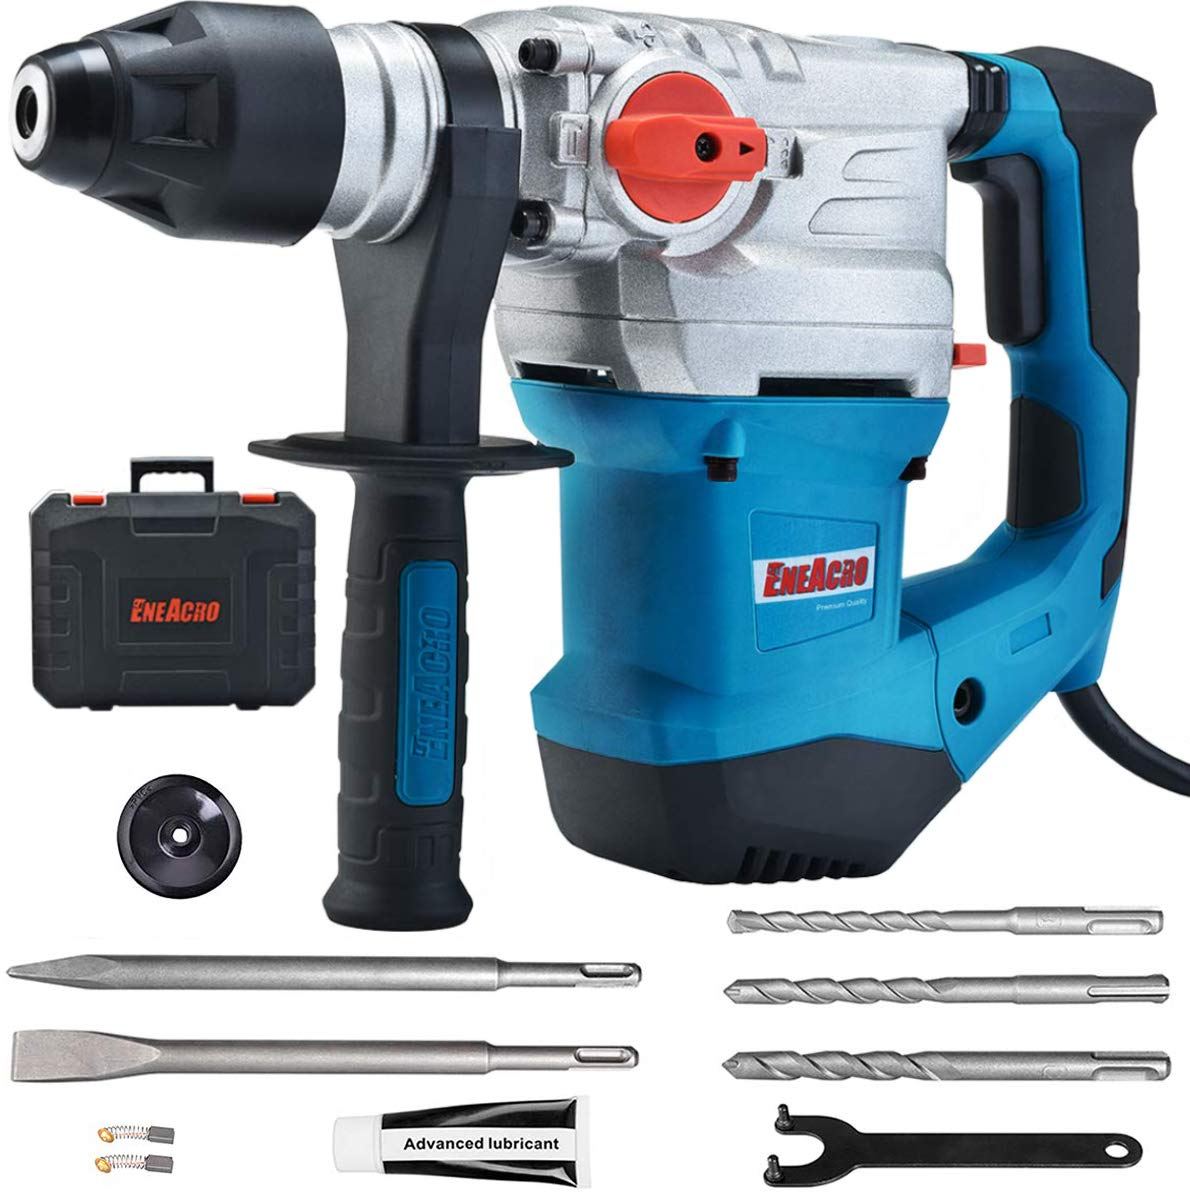 ENEACRO 1-1 4 Inch SDS-Plus 13 Amp Heavy Duty Rotary Hammer Drill, Safety Clutch 4 Functions with Vibration Control Including Grease, Chisels and Drill Bits with Case